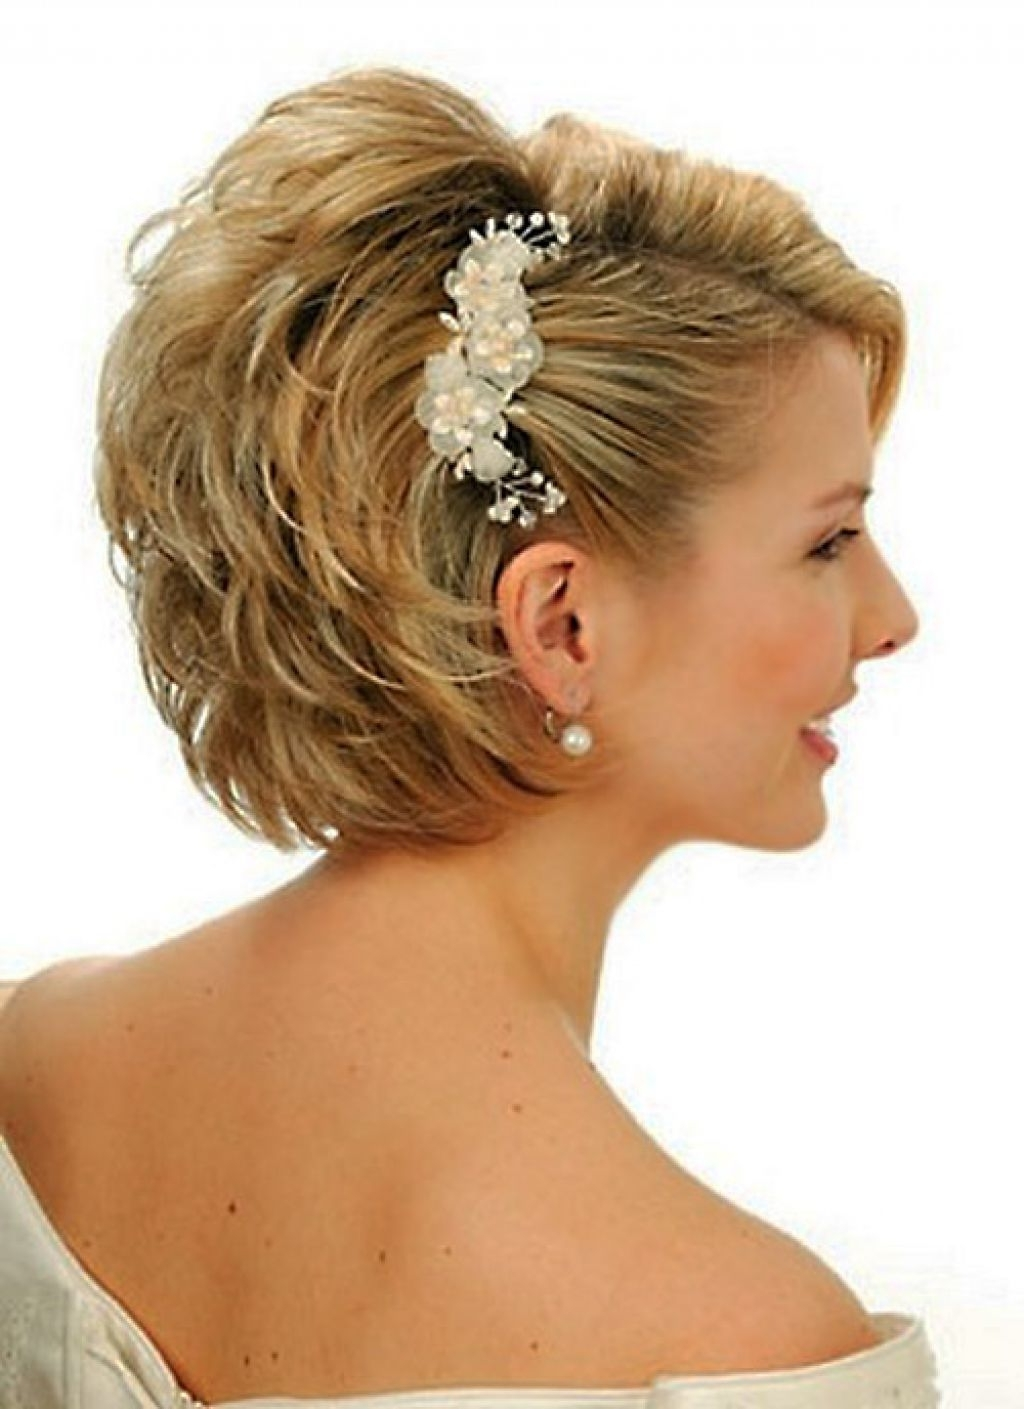 Classy Updo Hairstyles For Bridal Women – Popular Long Hairstyle Idea Intended For Updo Hairstyles For Short Hair For Wedding (View 4 of 15)